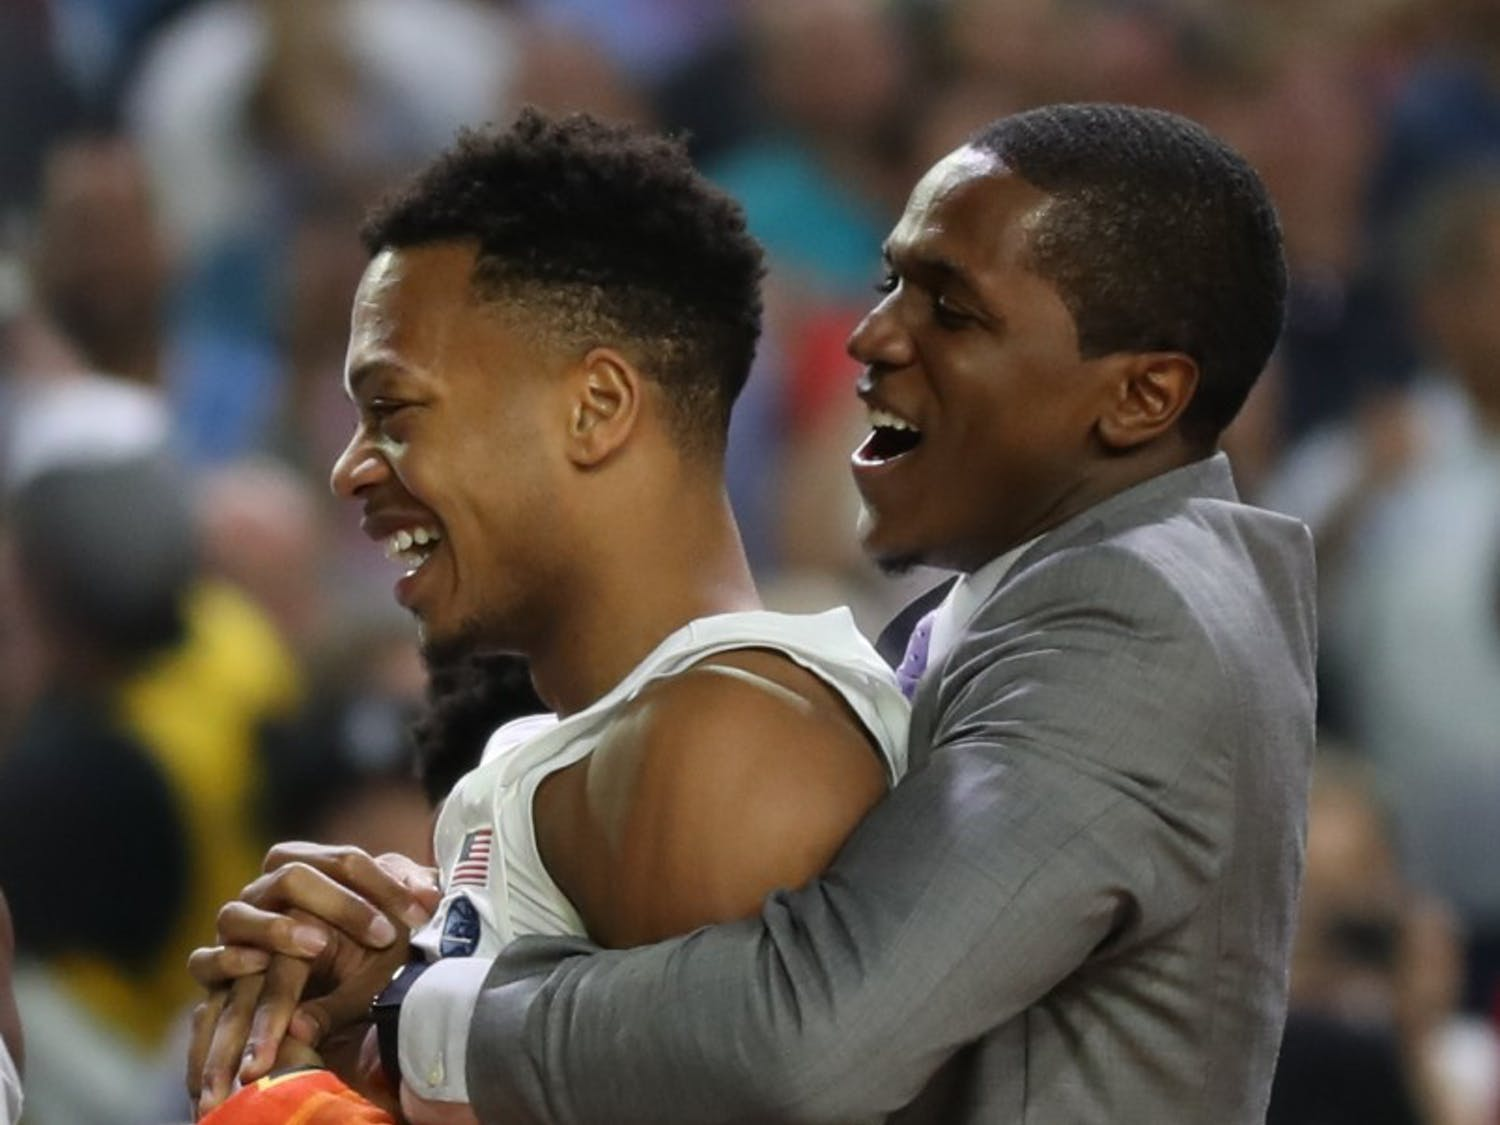 North Carolina guard Kenny Williams lifts up guard Nate Britt (0) on the bench in the final seconds of the NCAA Men's Basketball Championship against Gonzaga Monday night in Phoenix.